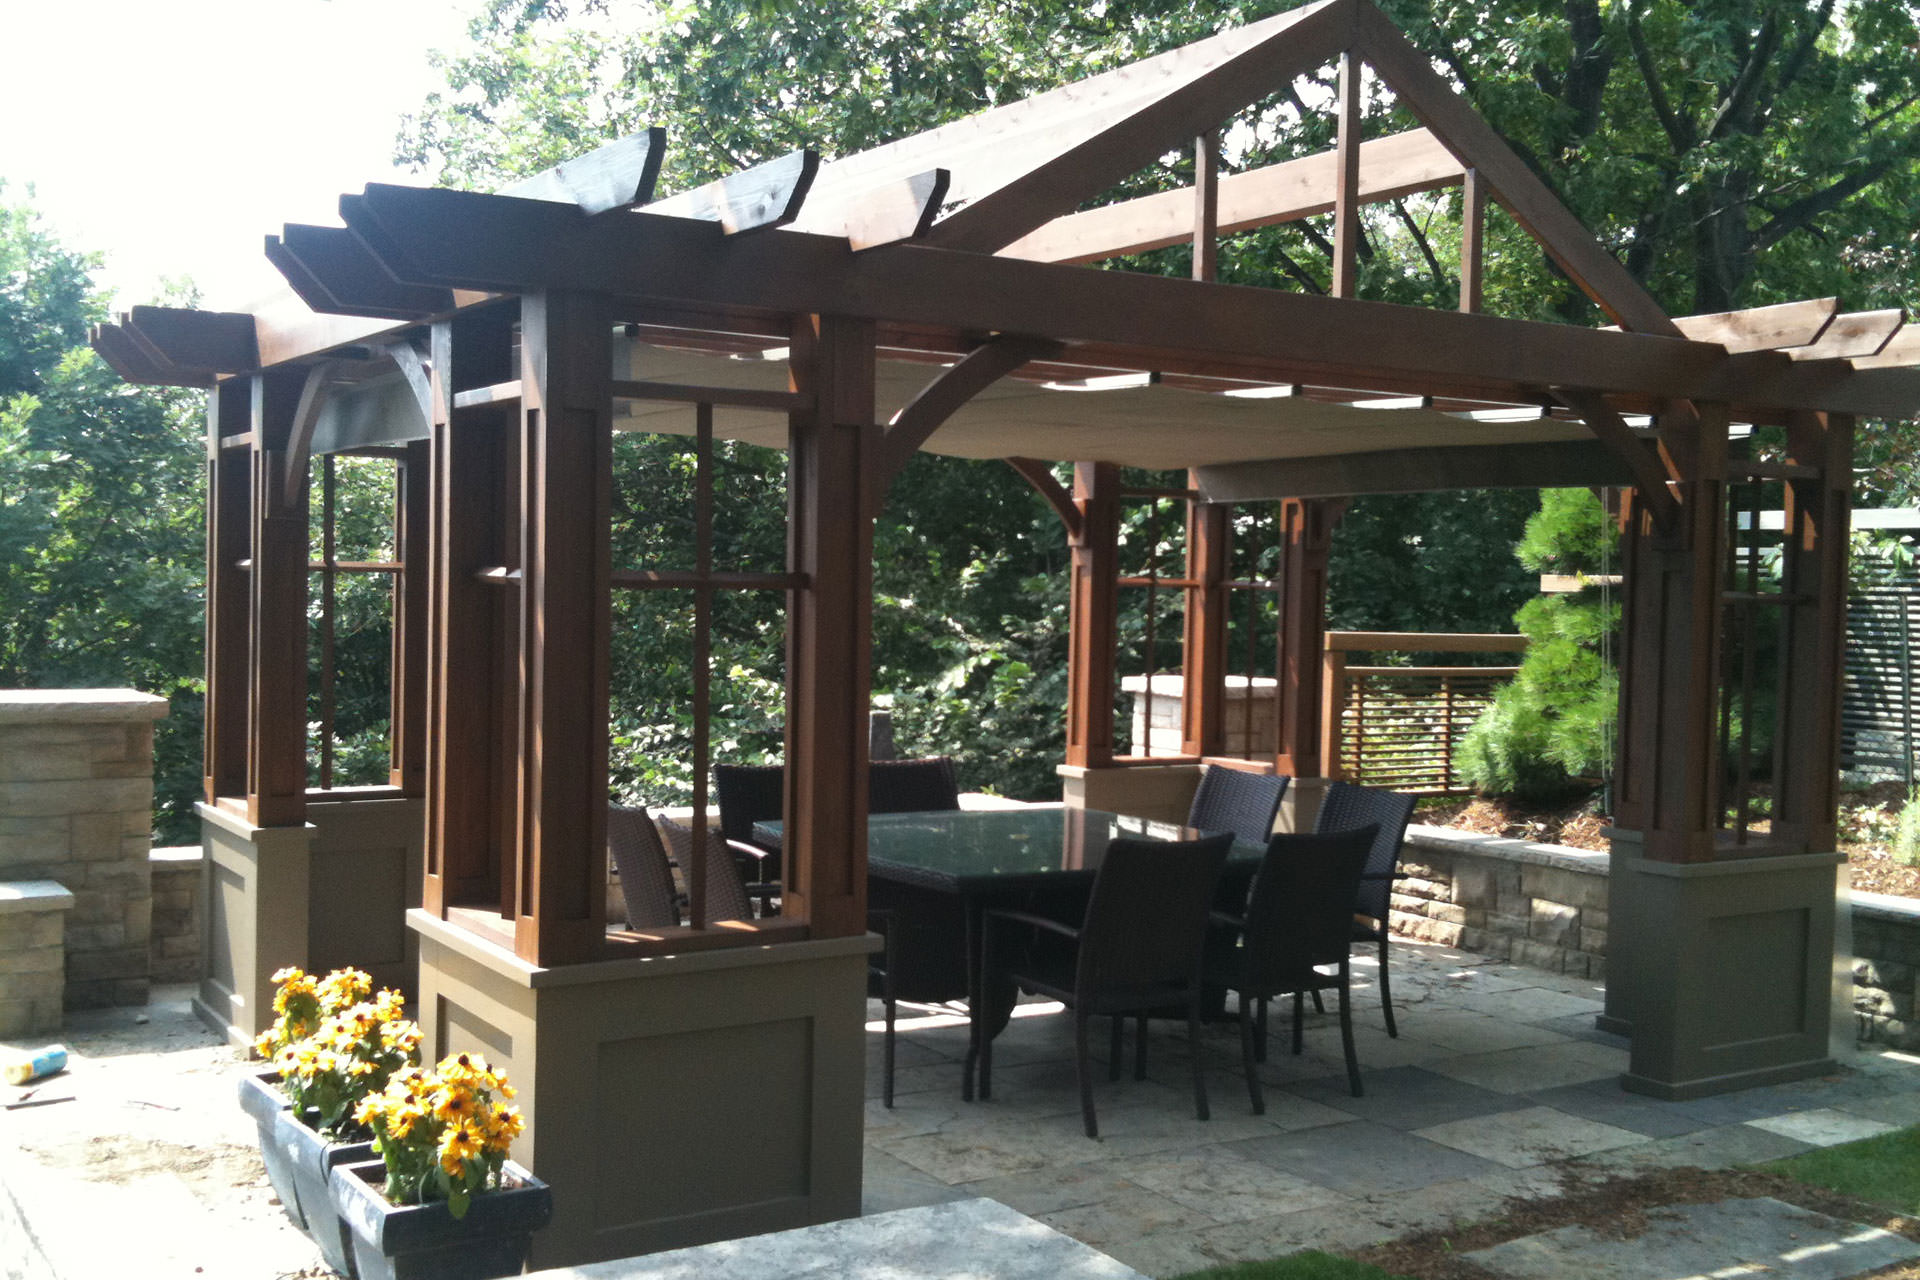 Pergola Kits - Outdoor Living Spaces Made Easy